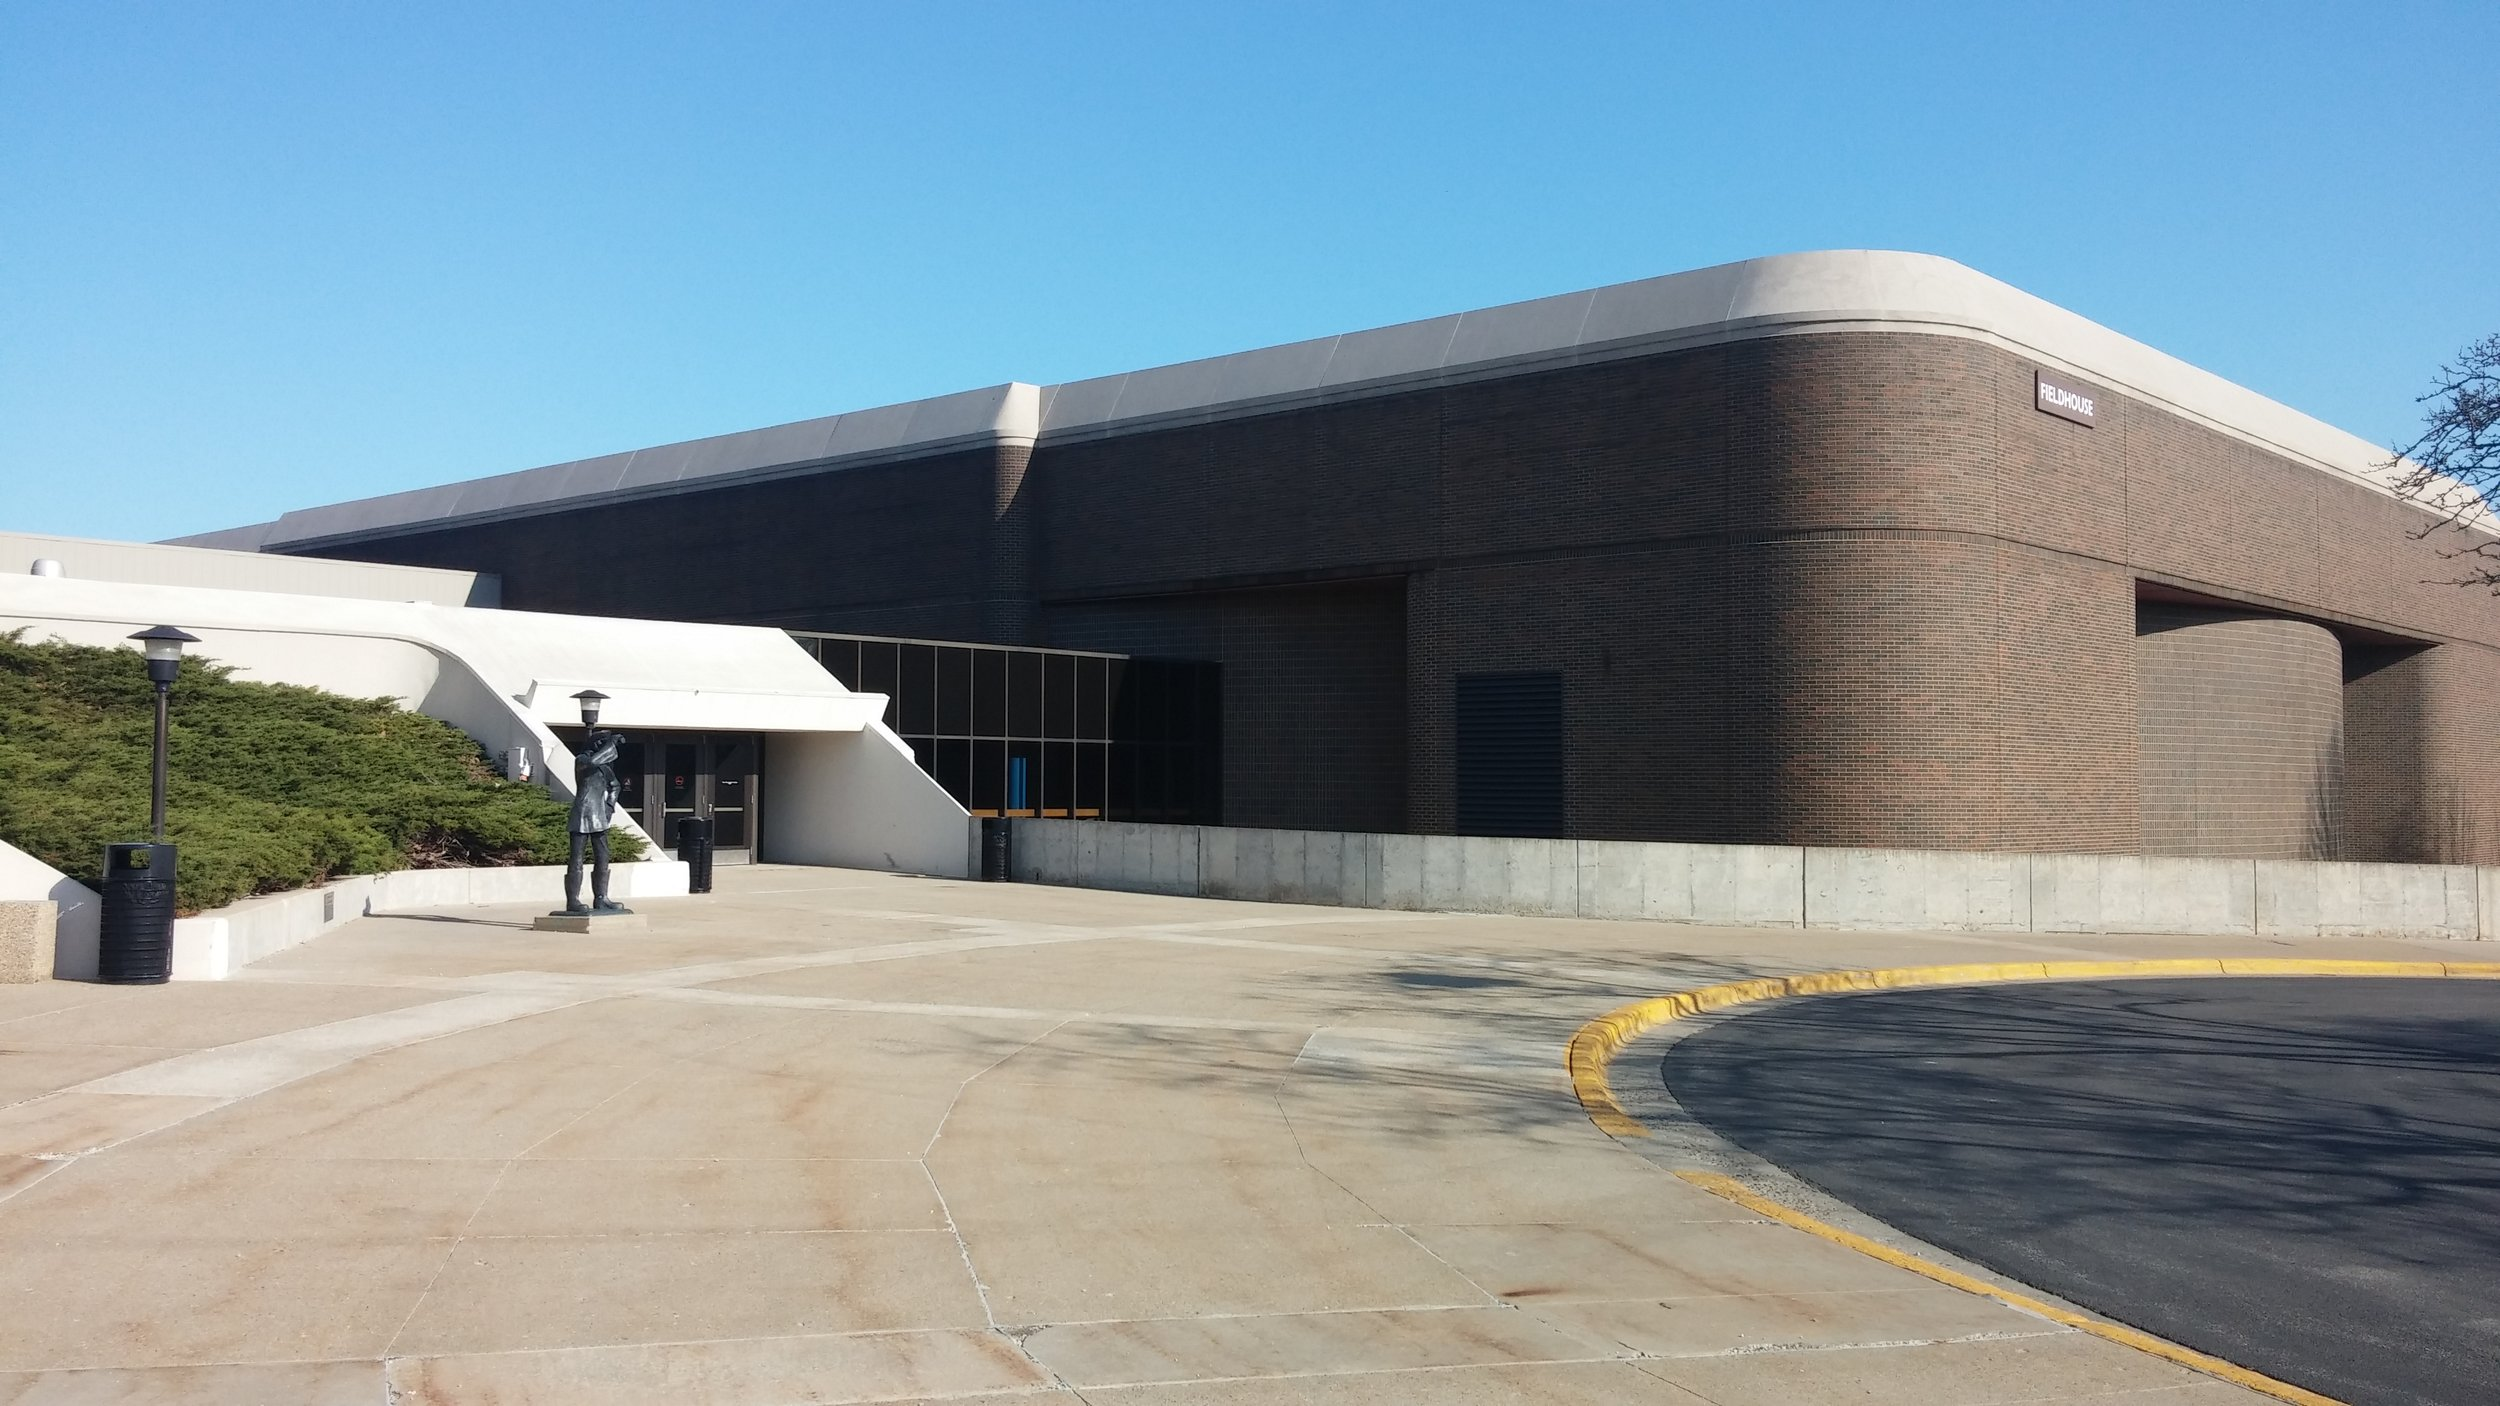 Grand Valley State University Fieldhouse Air Conditioning Unit